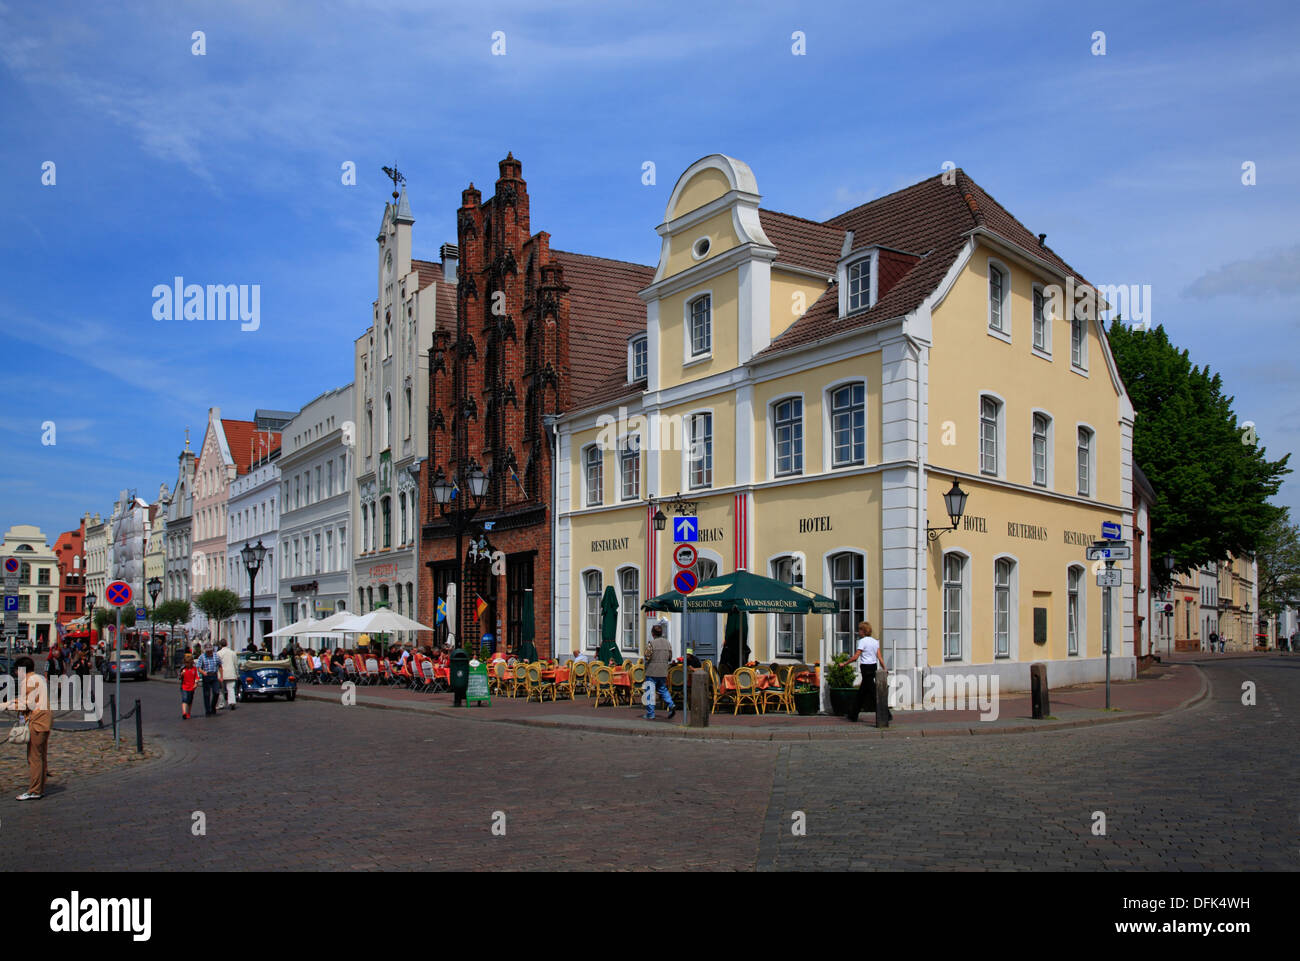 Old Houses at market square, Wismar, Baltic Sea, Mecklenburg West Pomerania, Germany - Stock Image